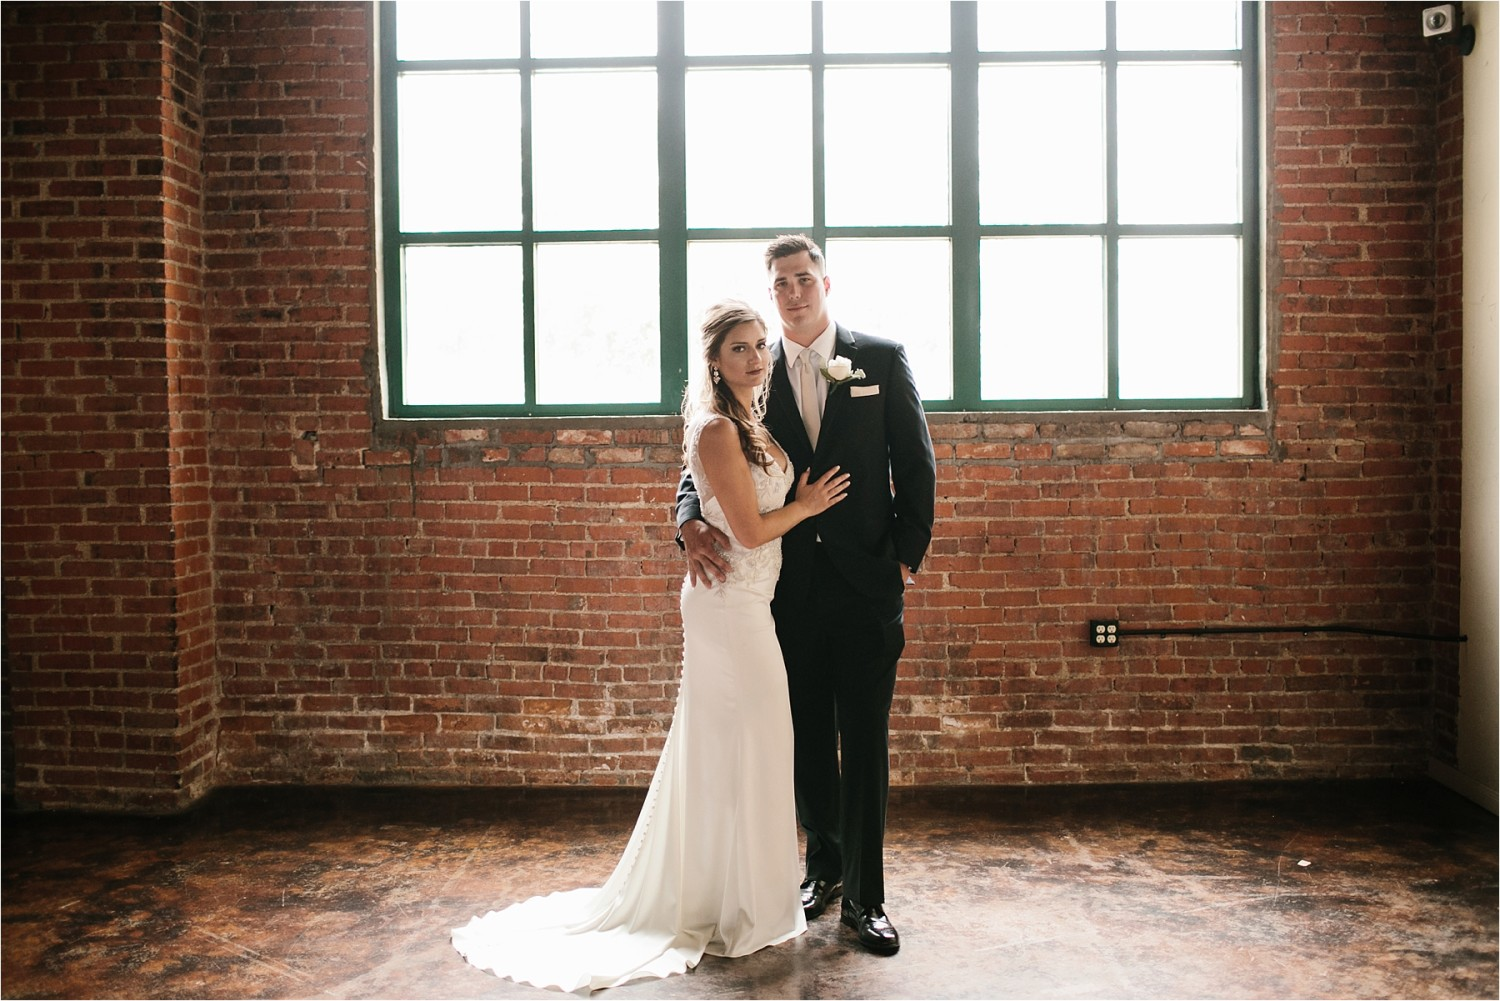 Holly + Jordan __ a black, gold, and greenery organic wedding at The Phoenix Ballroom in Waco, TX by North Texas Wedding Photographer Rachel Meagan Photography __ 32